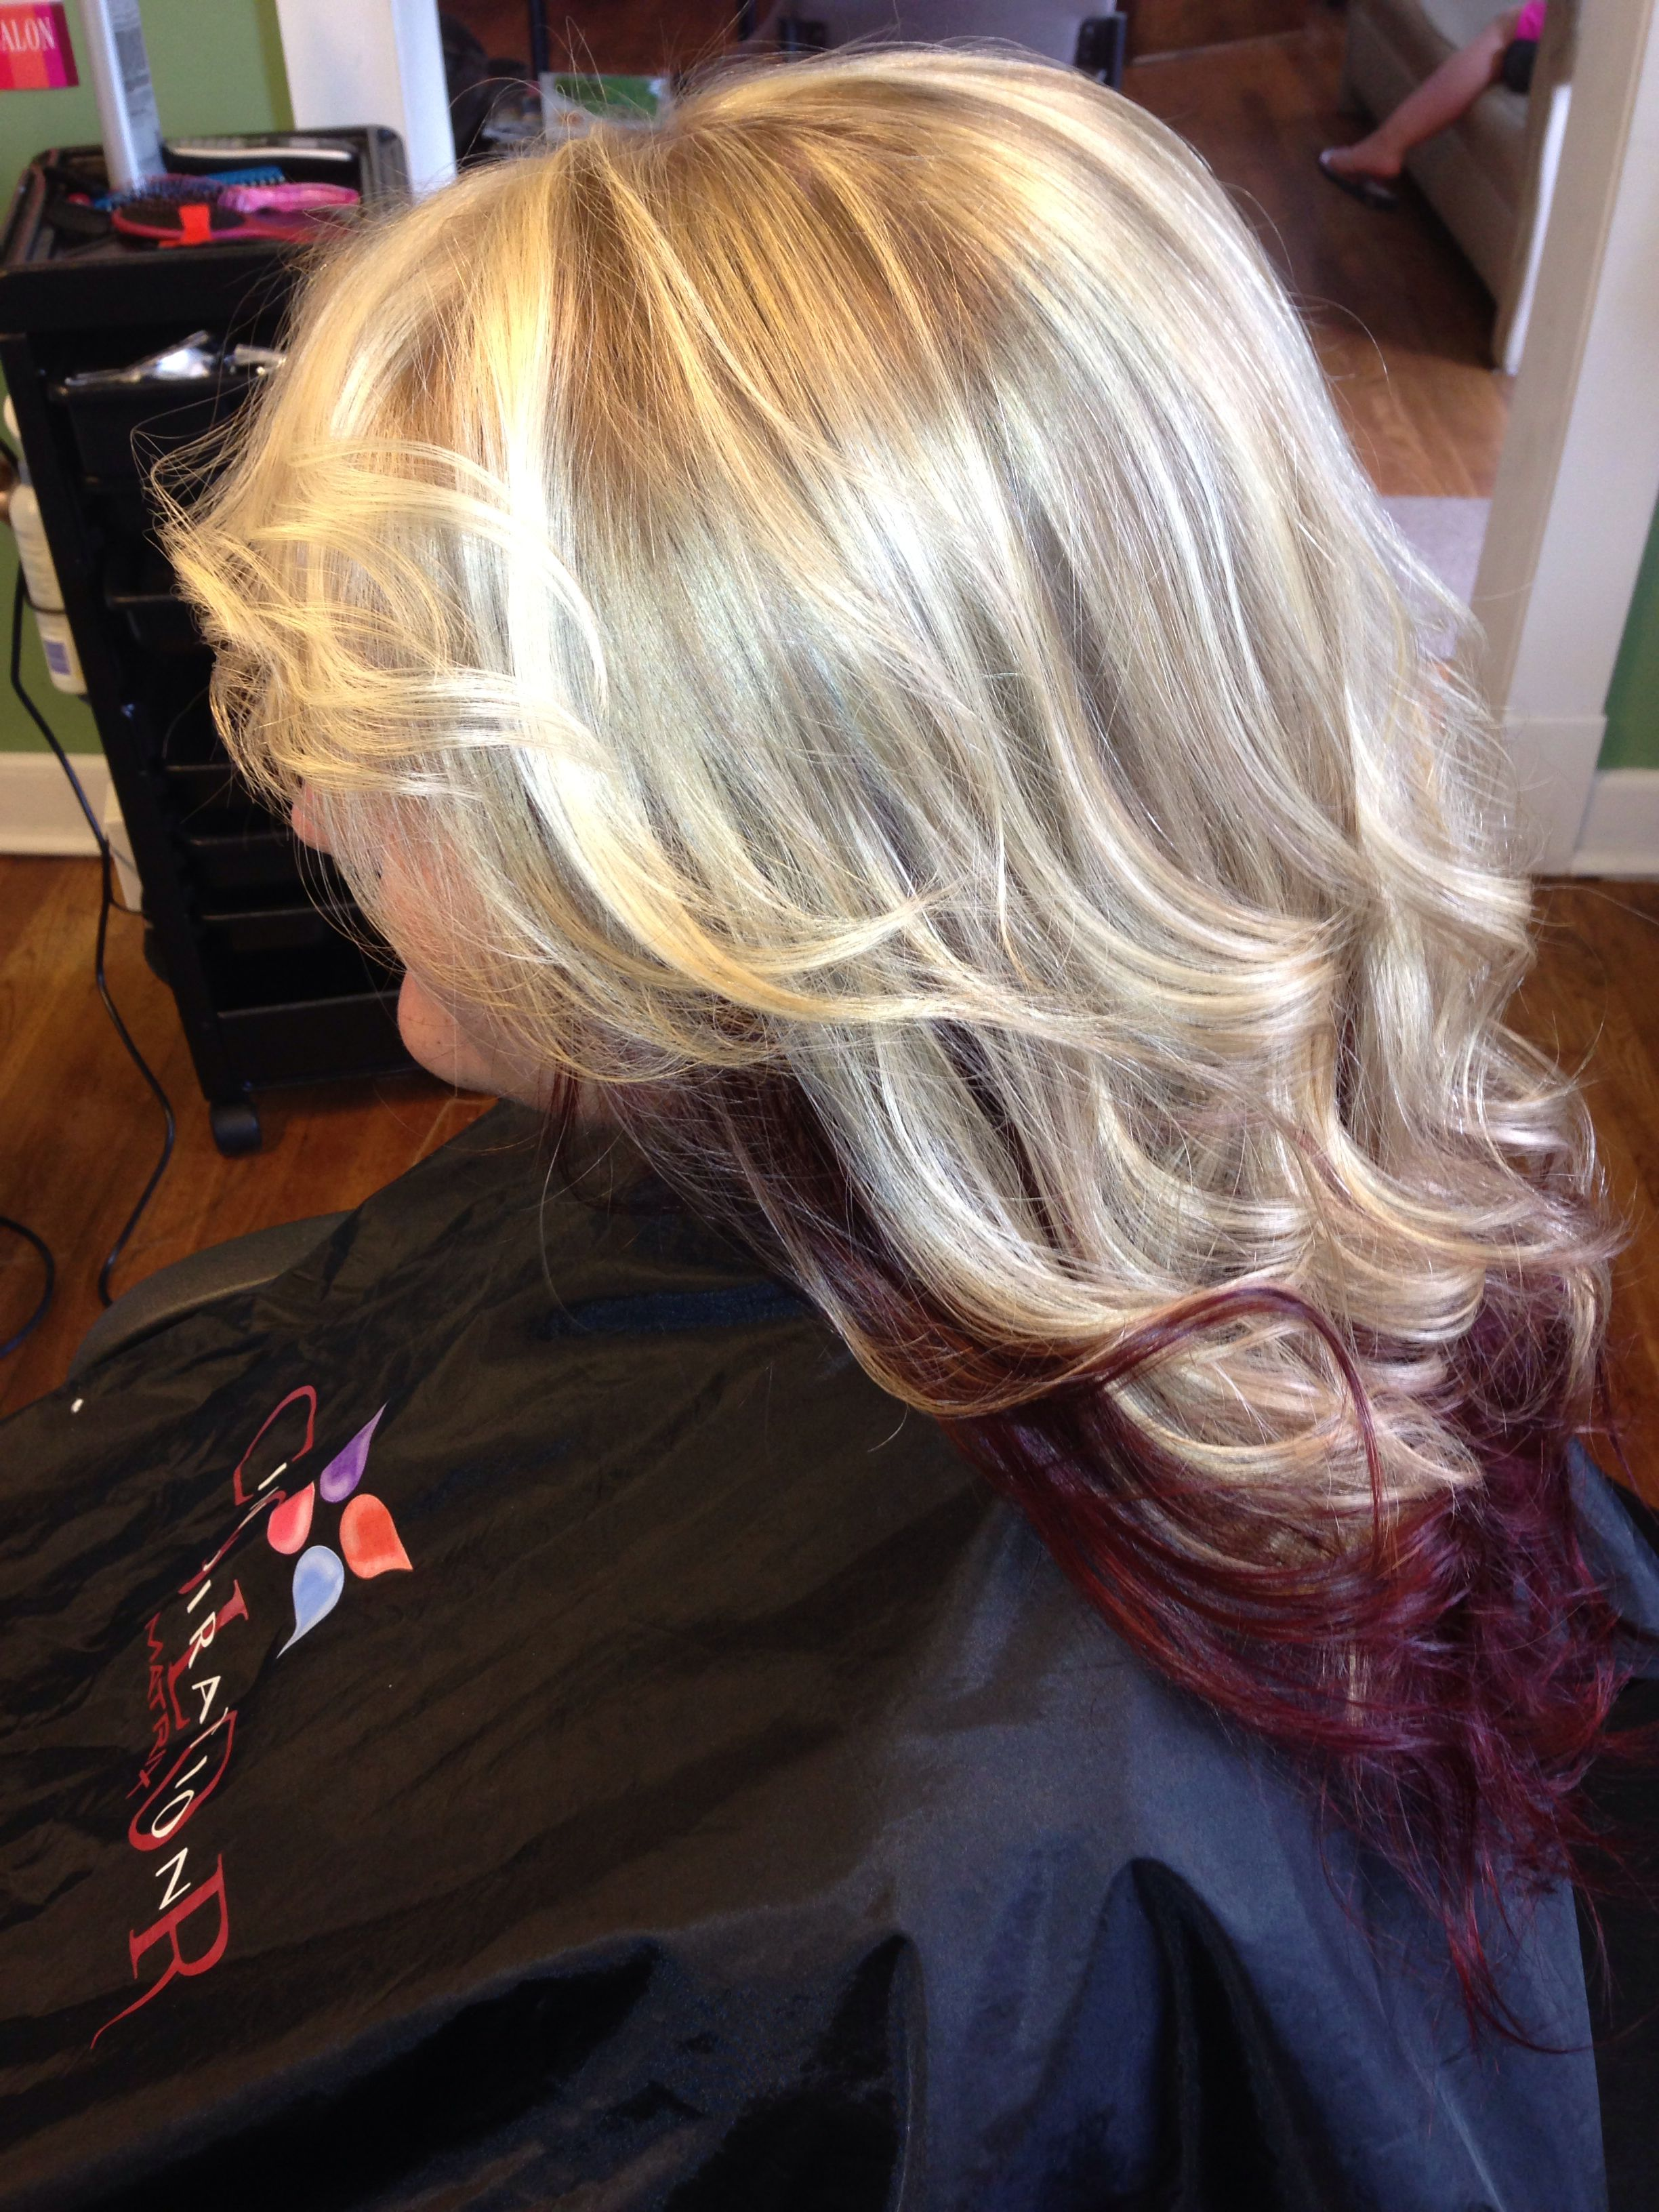 Pin By Lee Ann Joines On Southern Style Salon Hair Styles 2014 Hair Beauty Hair Styles